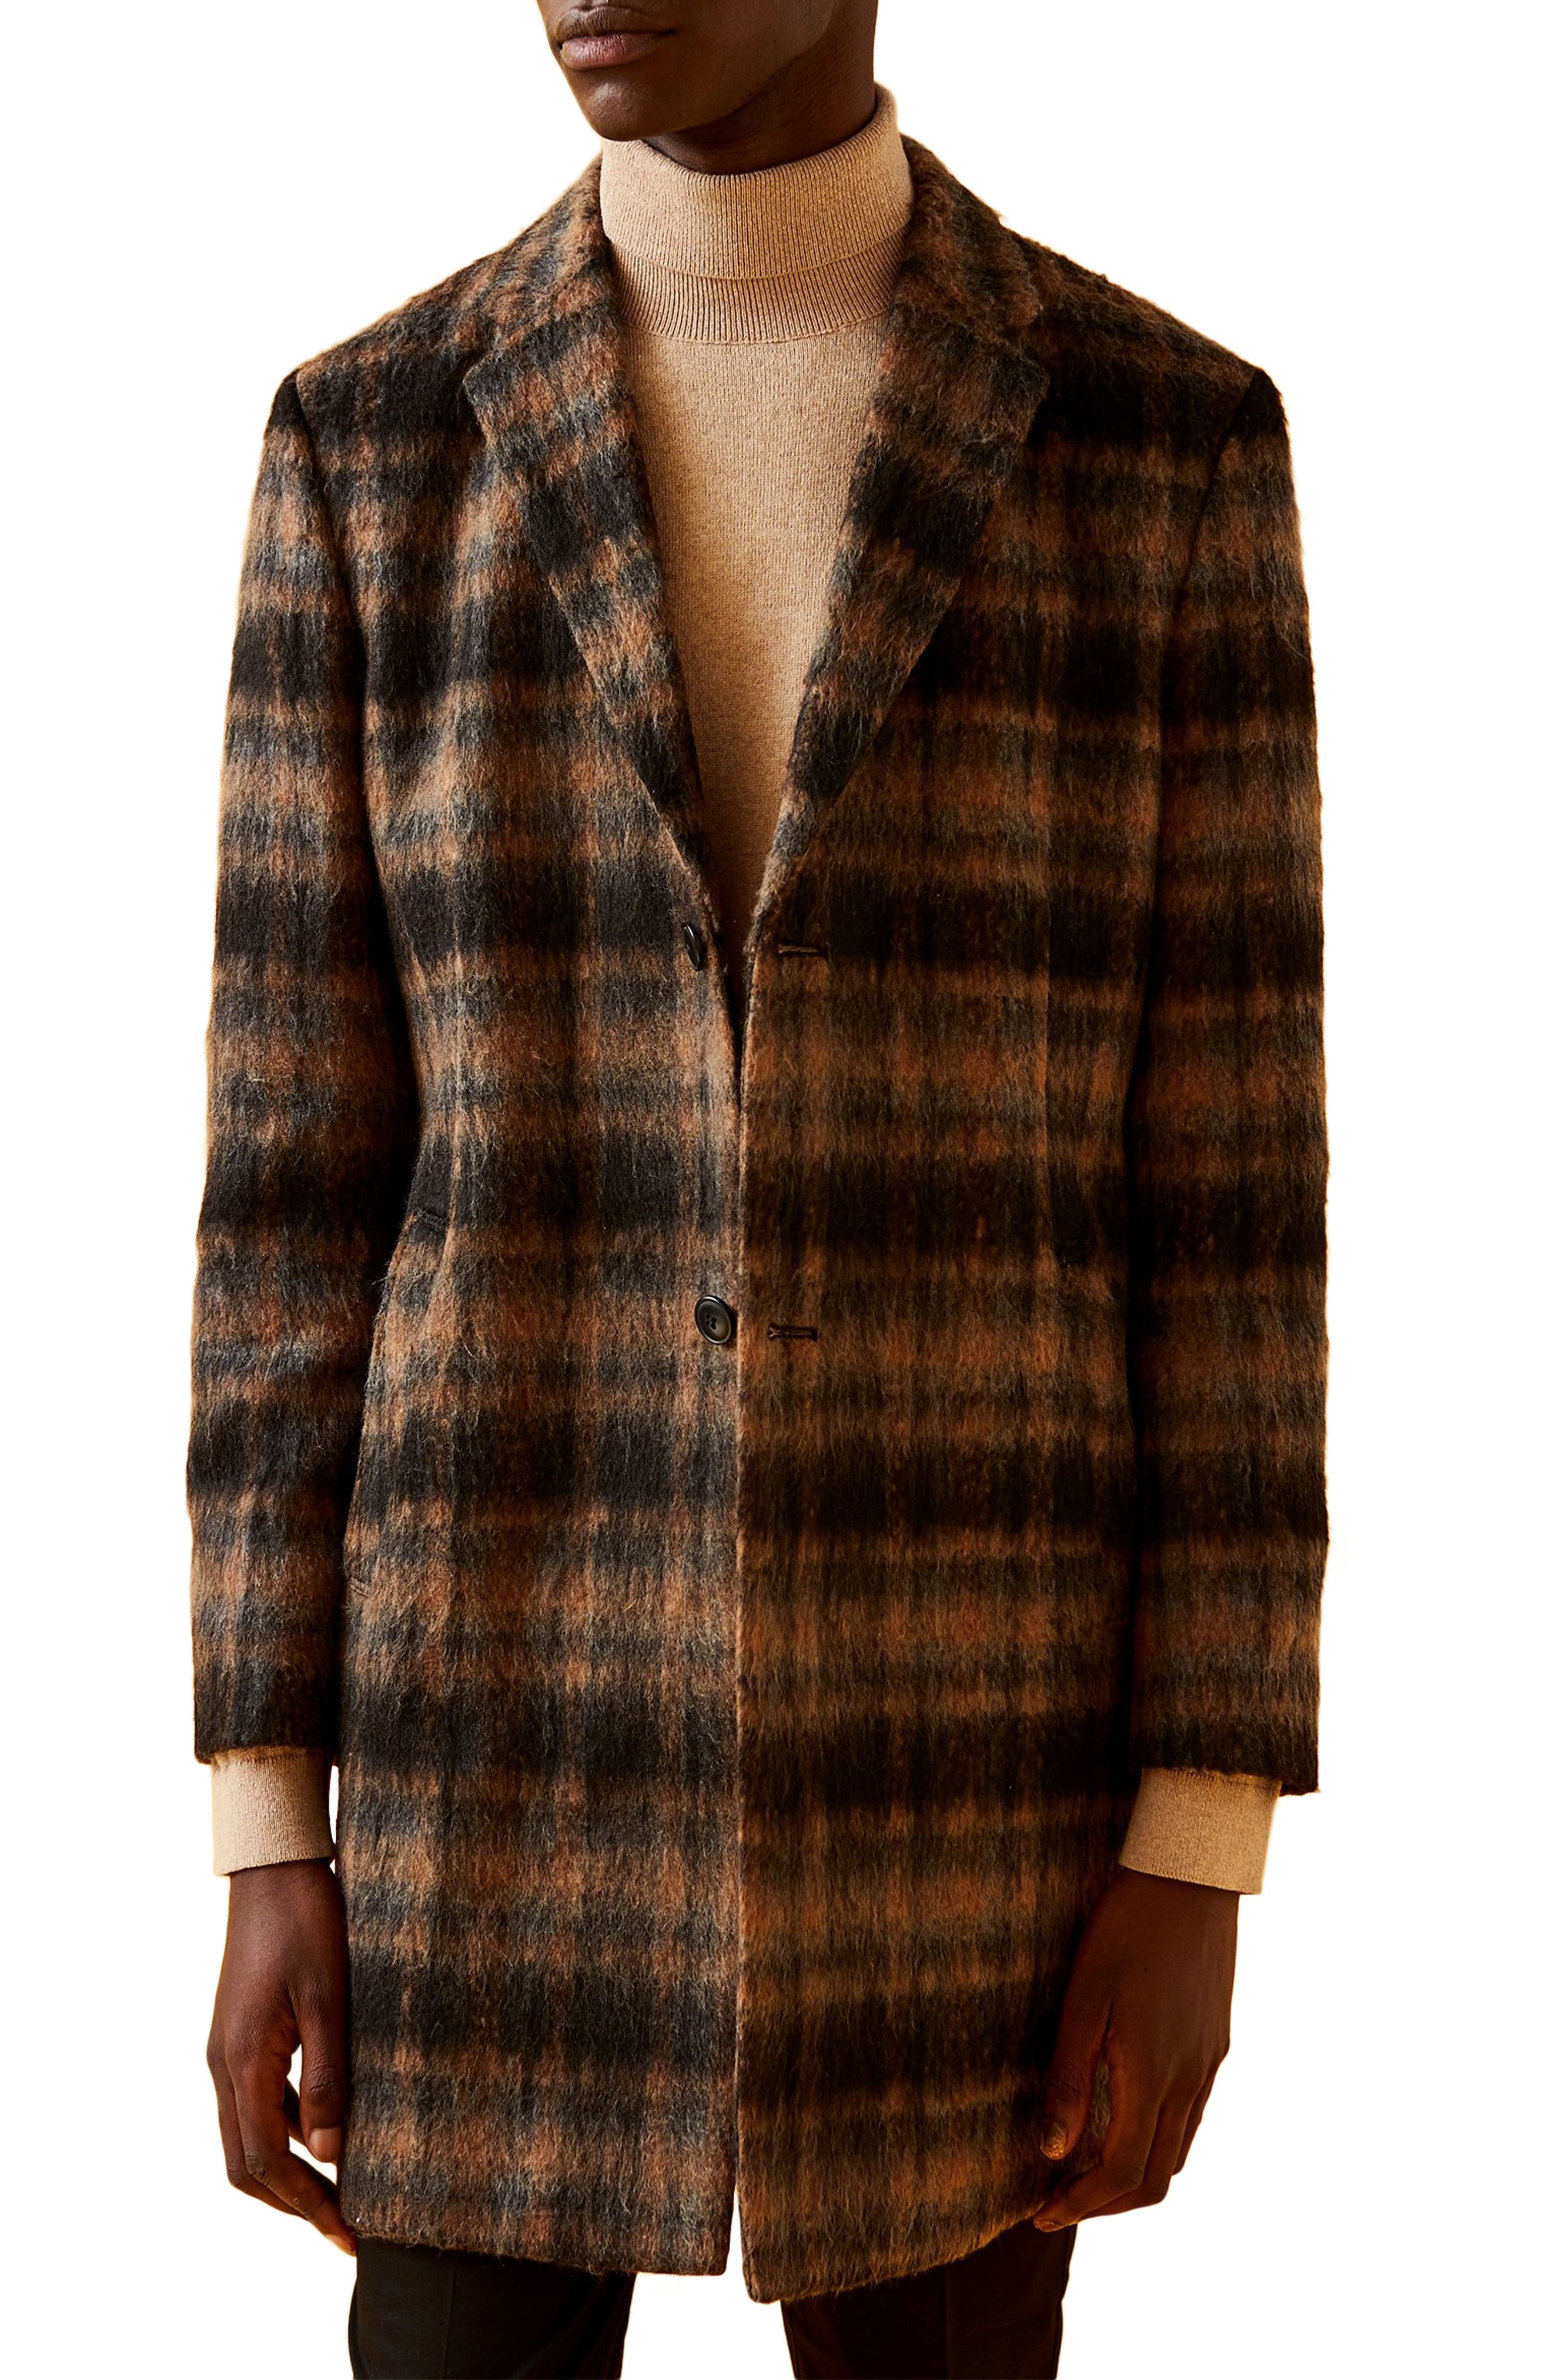 Men's Vintage Jackets & Coats Mens Topman Wool Blend Check Overcoat $175.00 AT vintagedancer.com